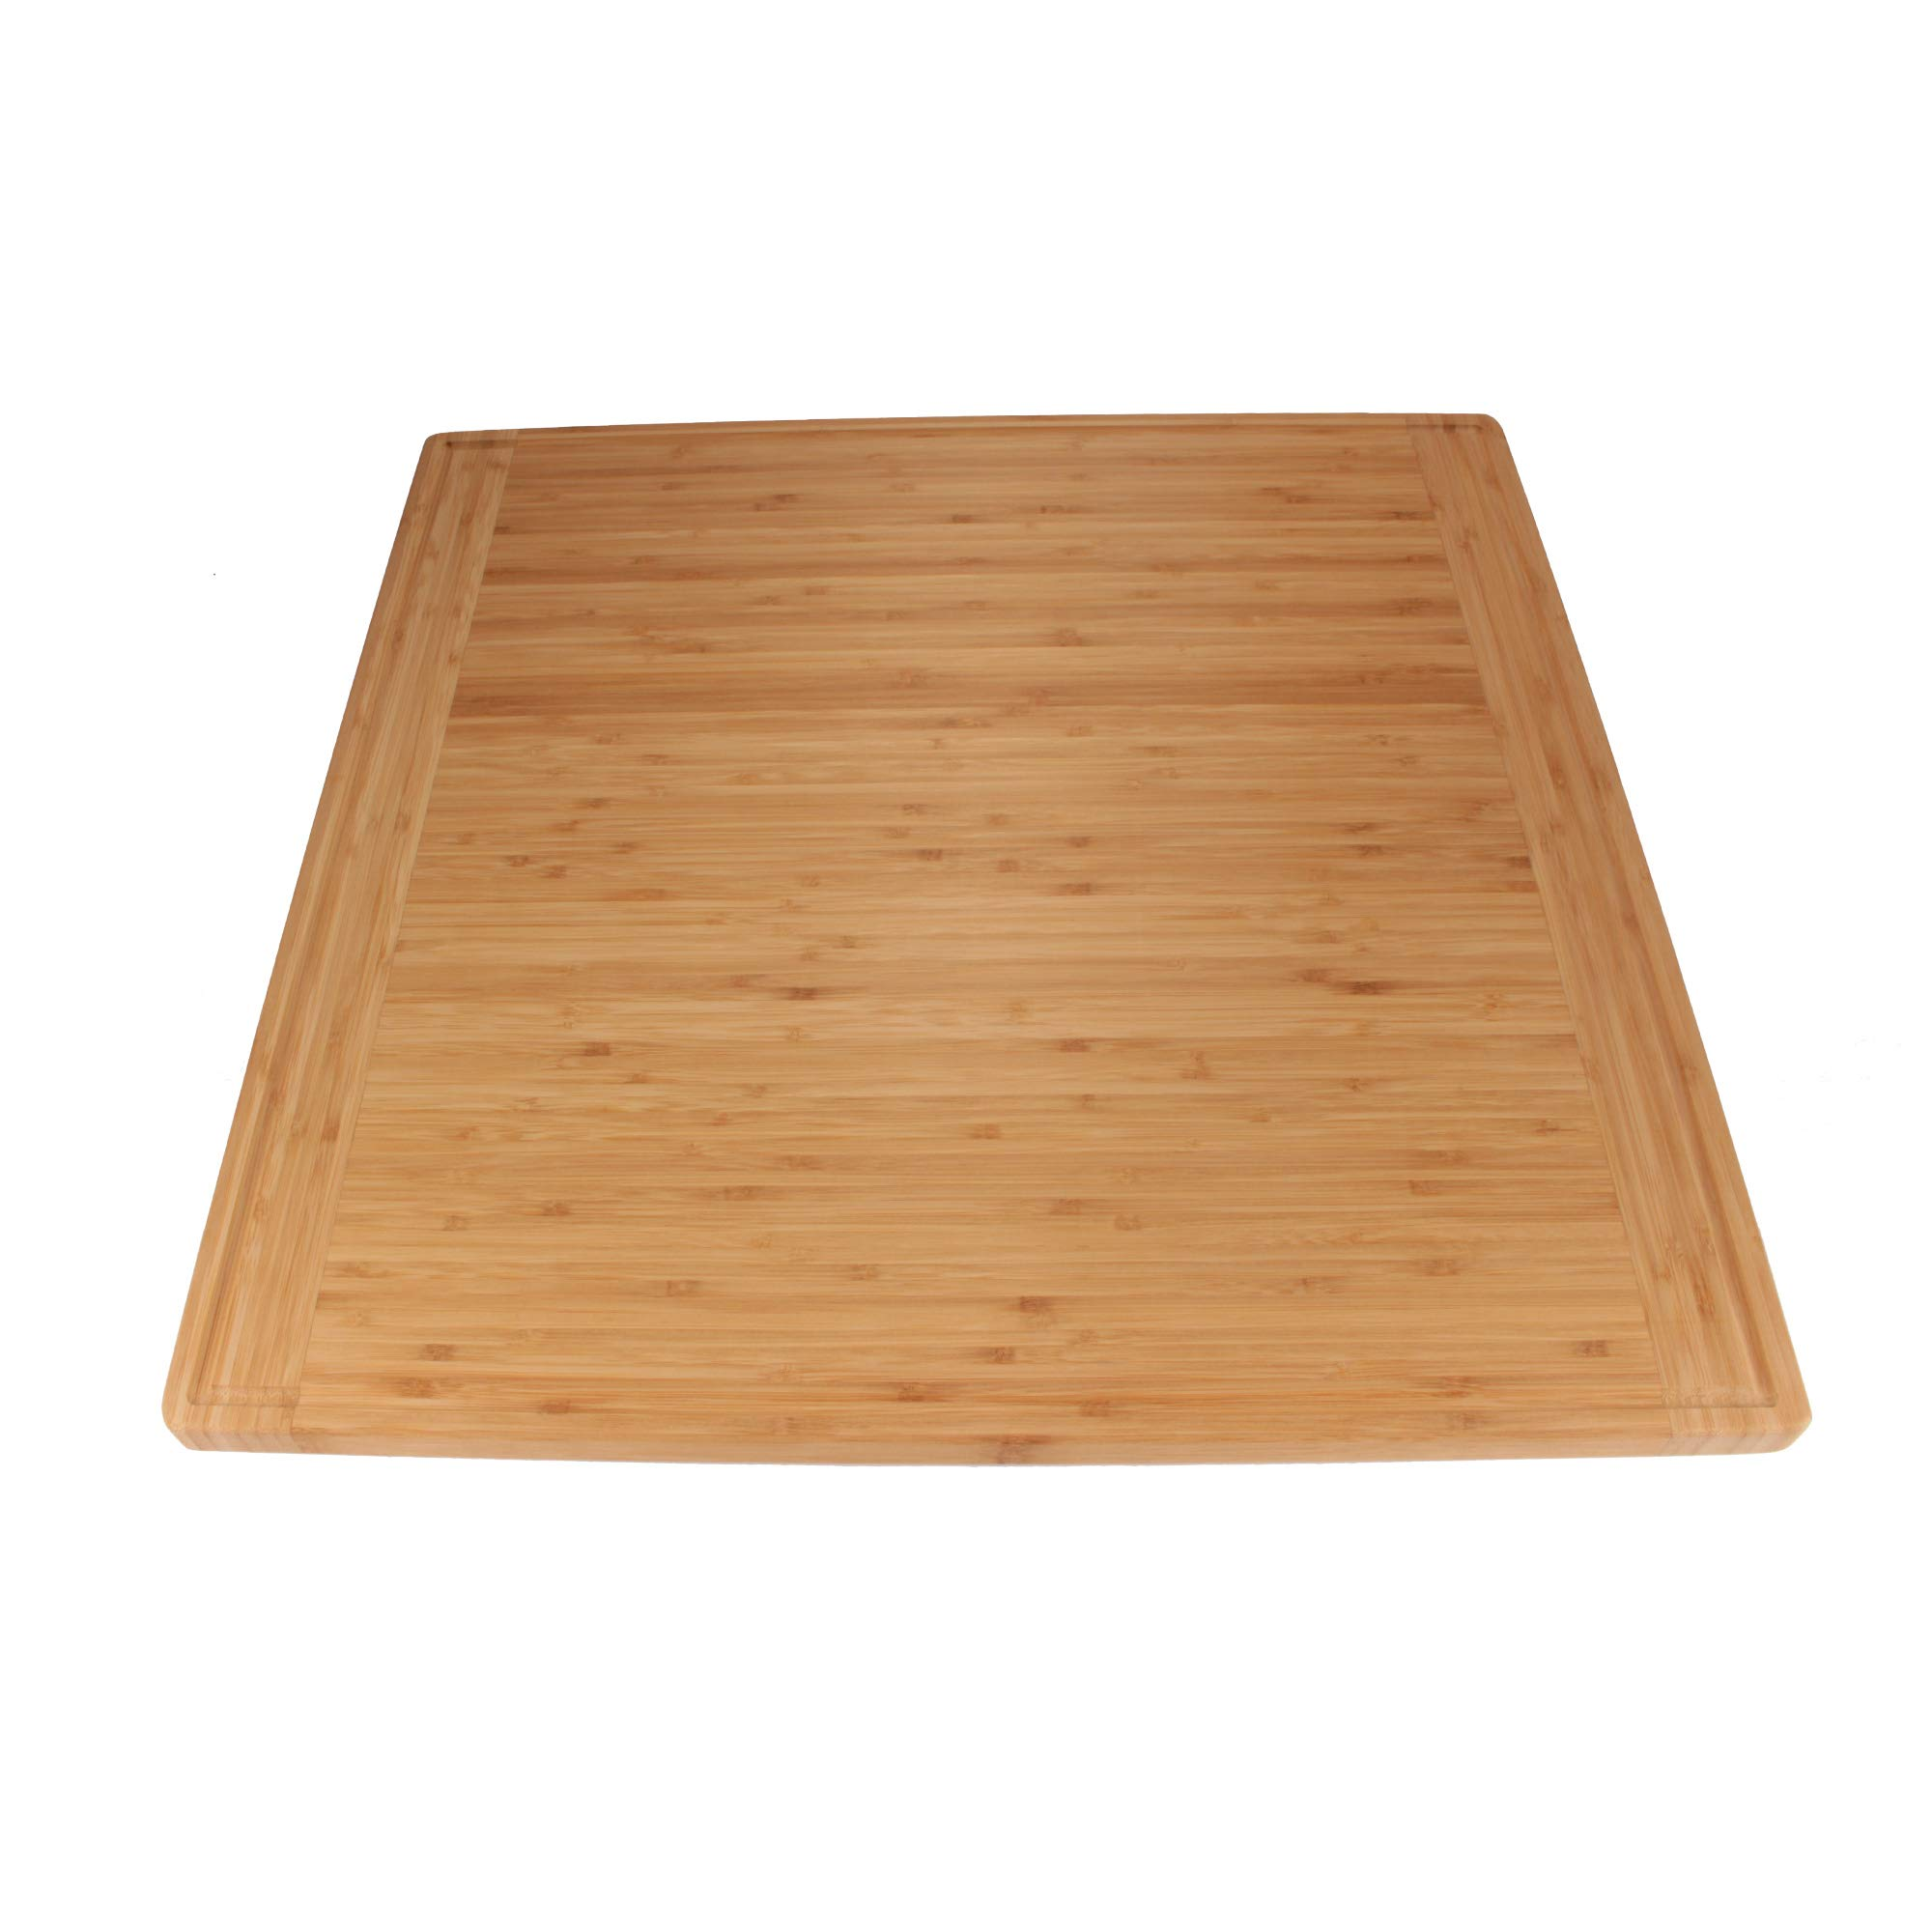 BambooMN Universal Premium Pull Out Cutting Boards - Under Counter Replacement - Designed To Fit Standard Slots Heavy Duty Kitchen Board with Juice Groove - 22'' x 22'' x 0.75'' - 1 Piece